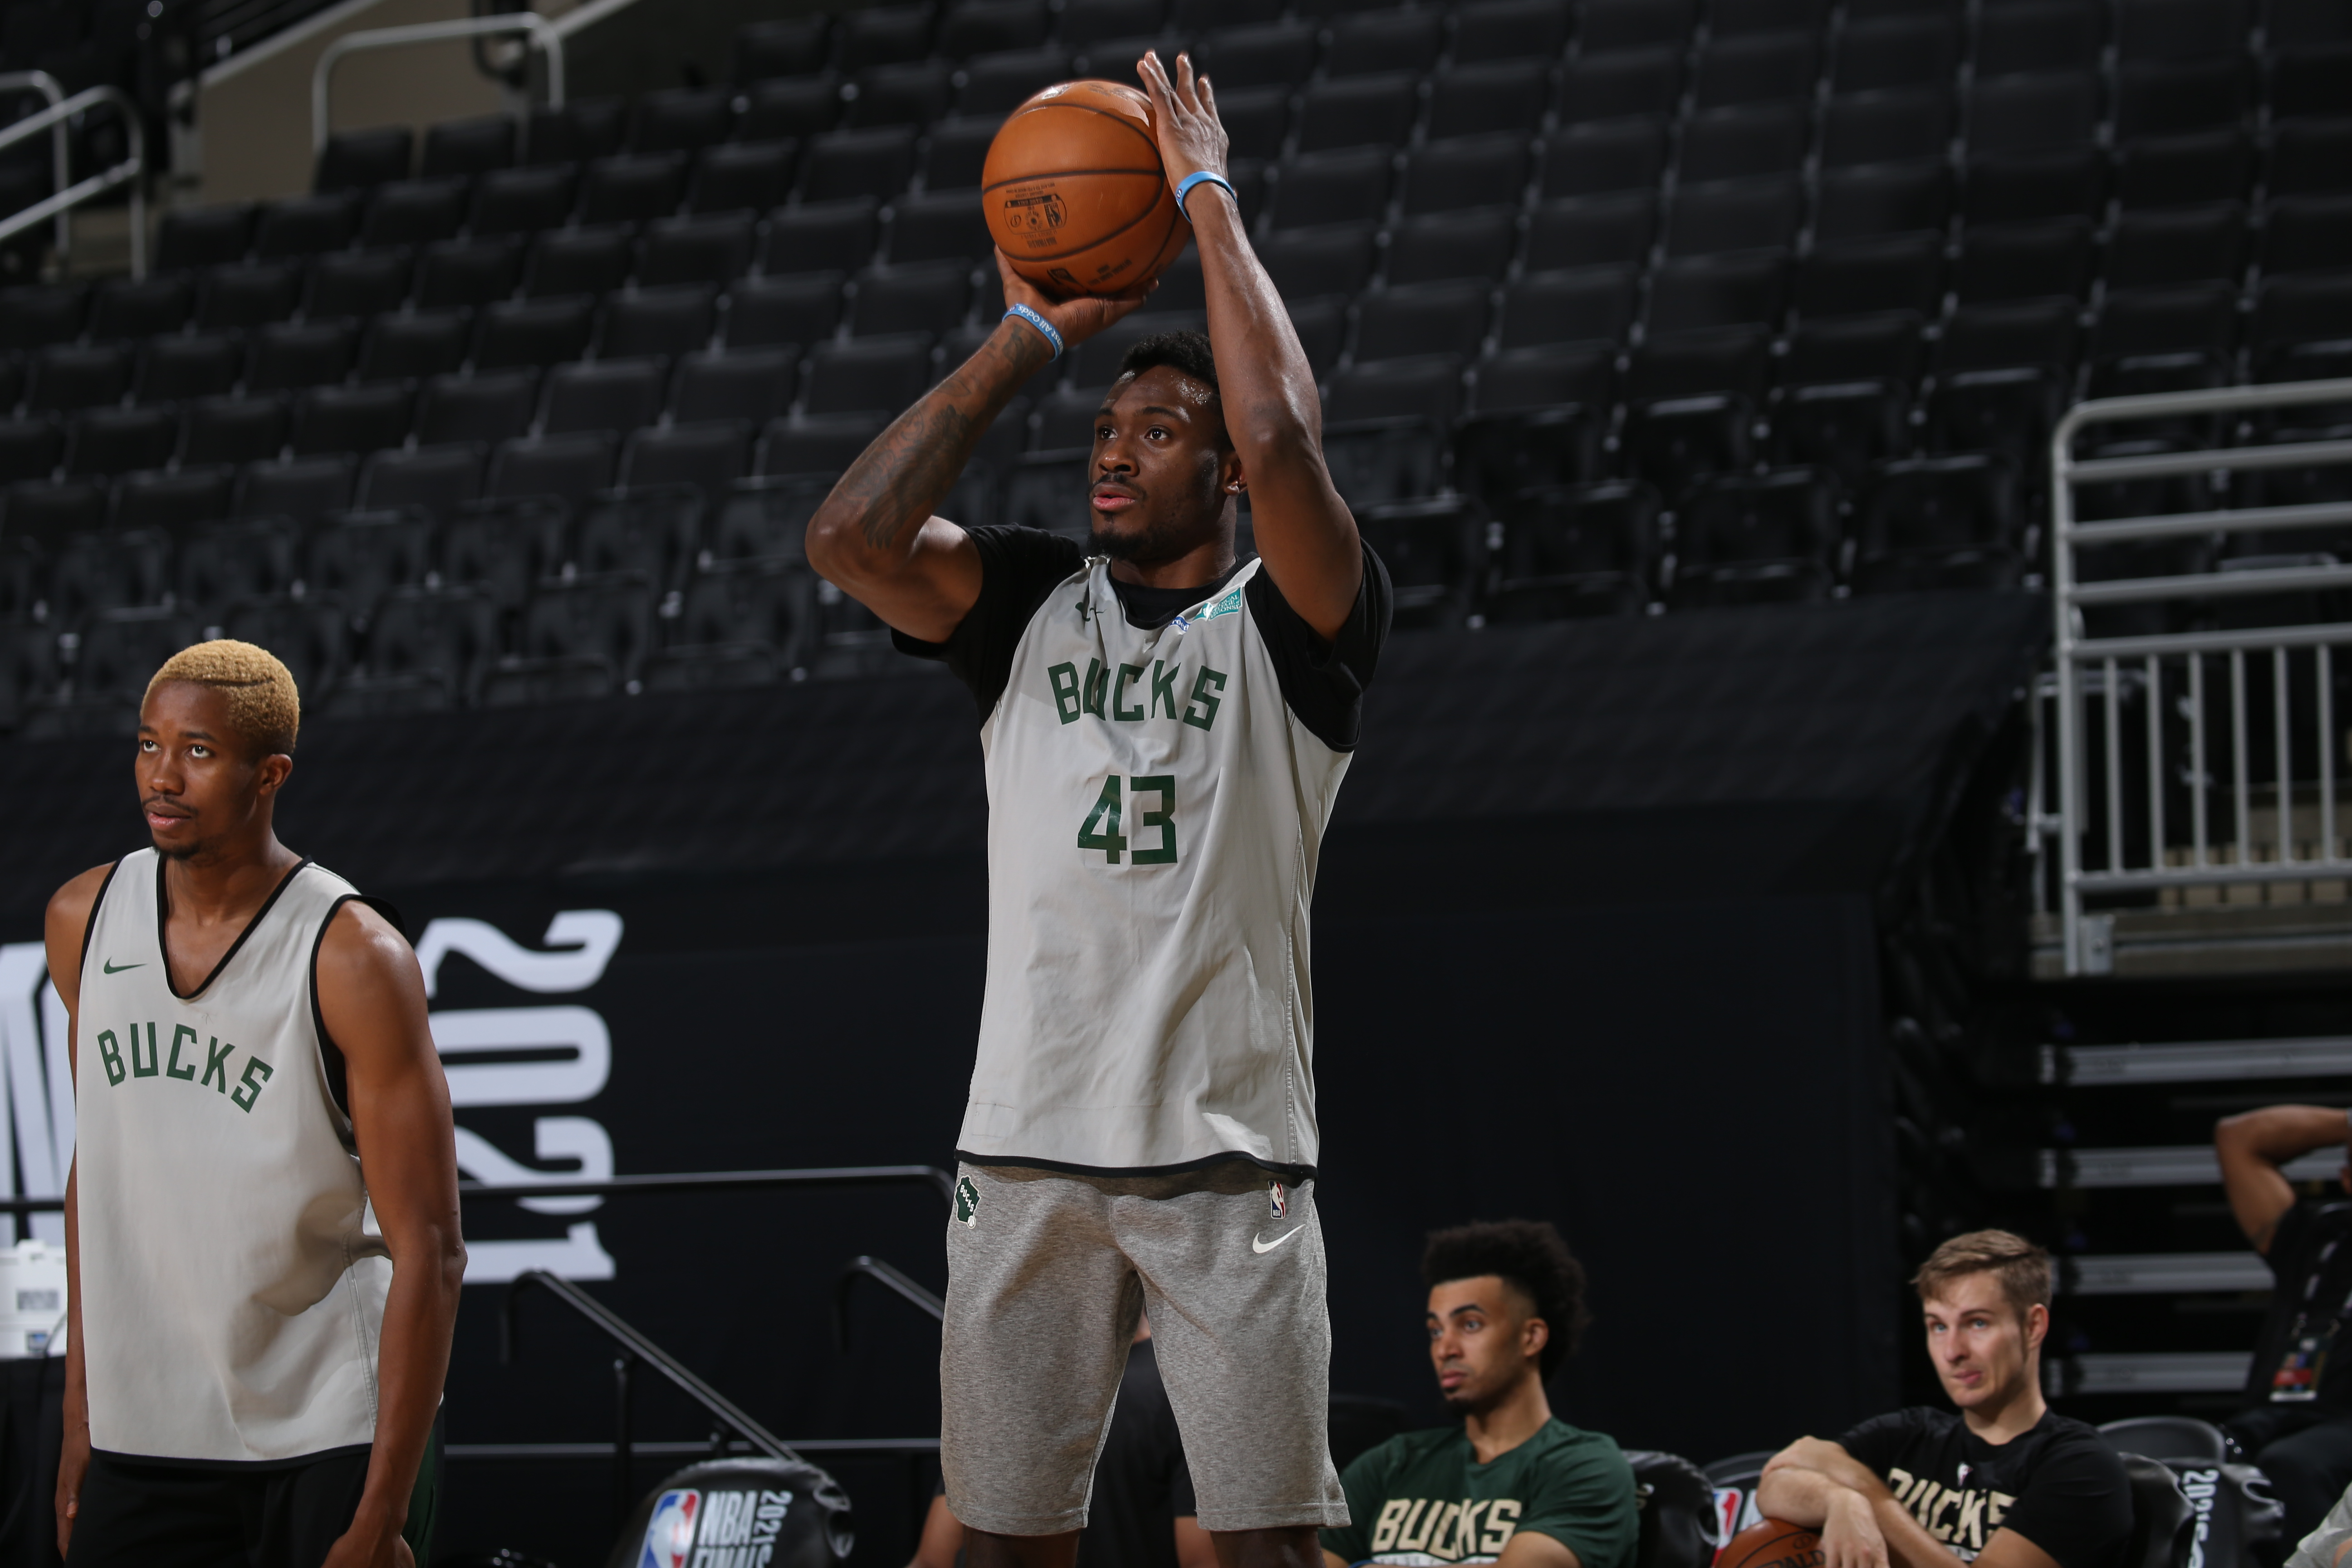 Thanasis Antetokounmpo of the Milwaukee Bucks shoots during practice and media availability as part of the 2021 NBA Finals on July 13, 2021 at Fiserv Forum Center in Milwaukee, Wisconsin.